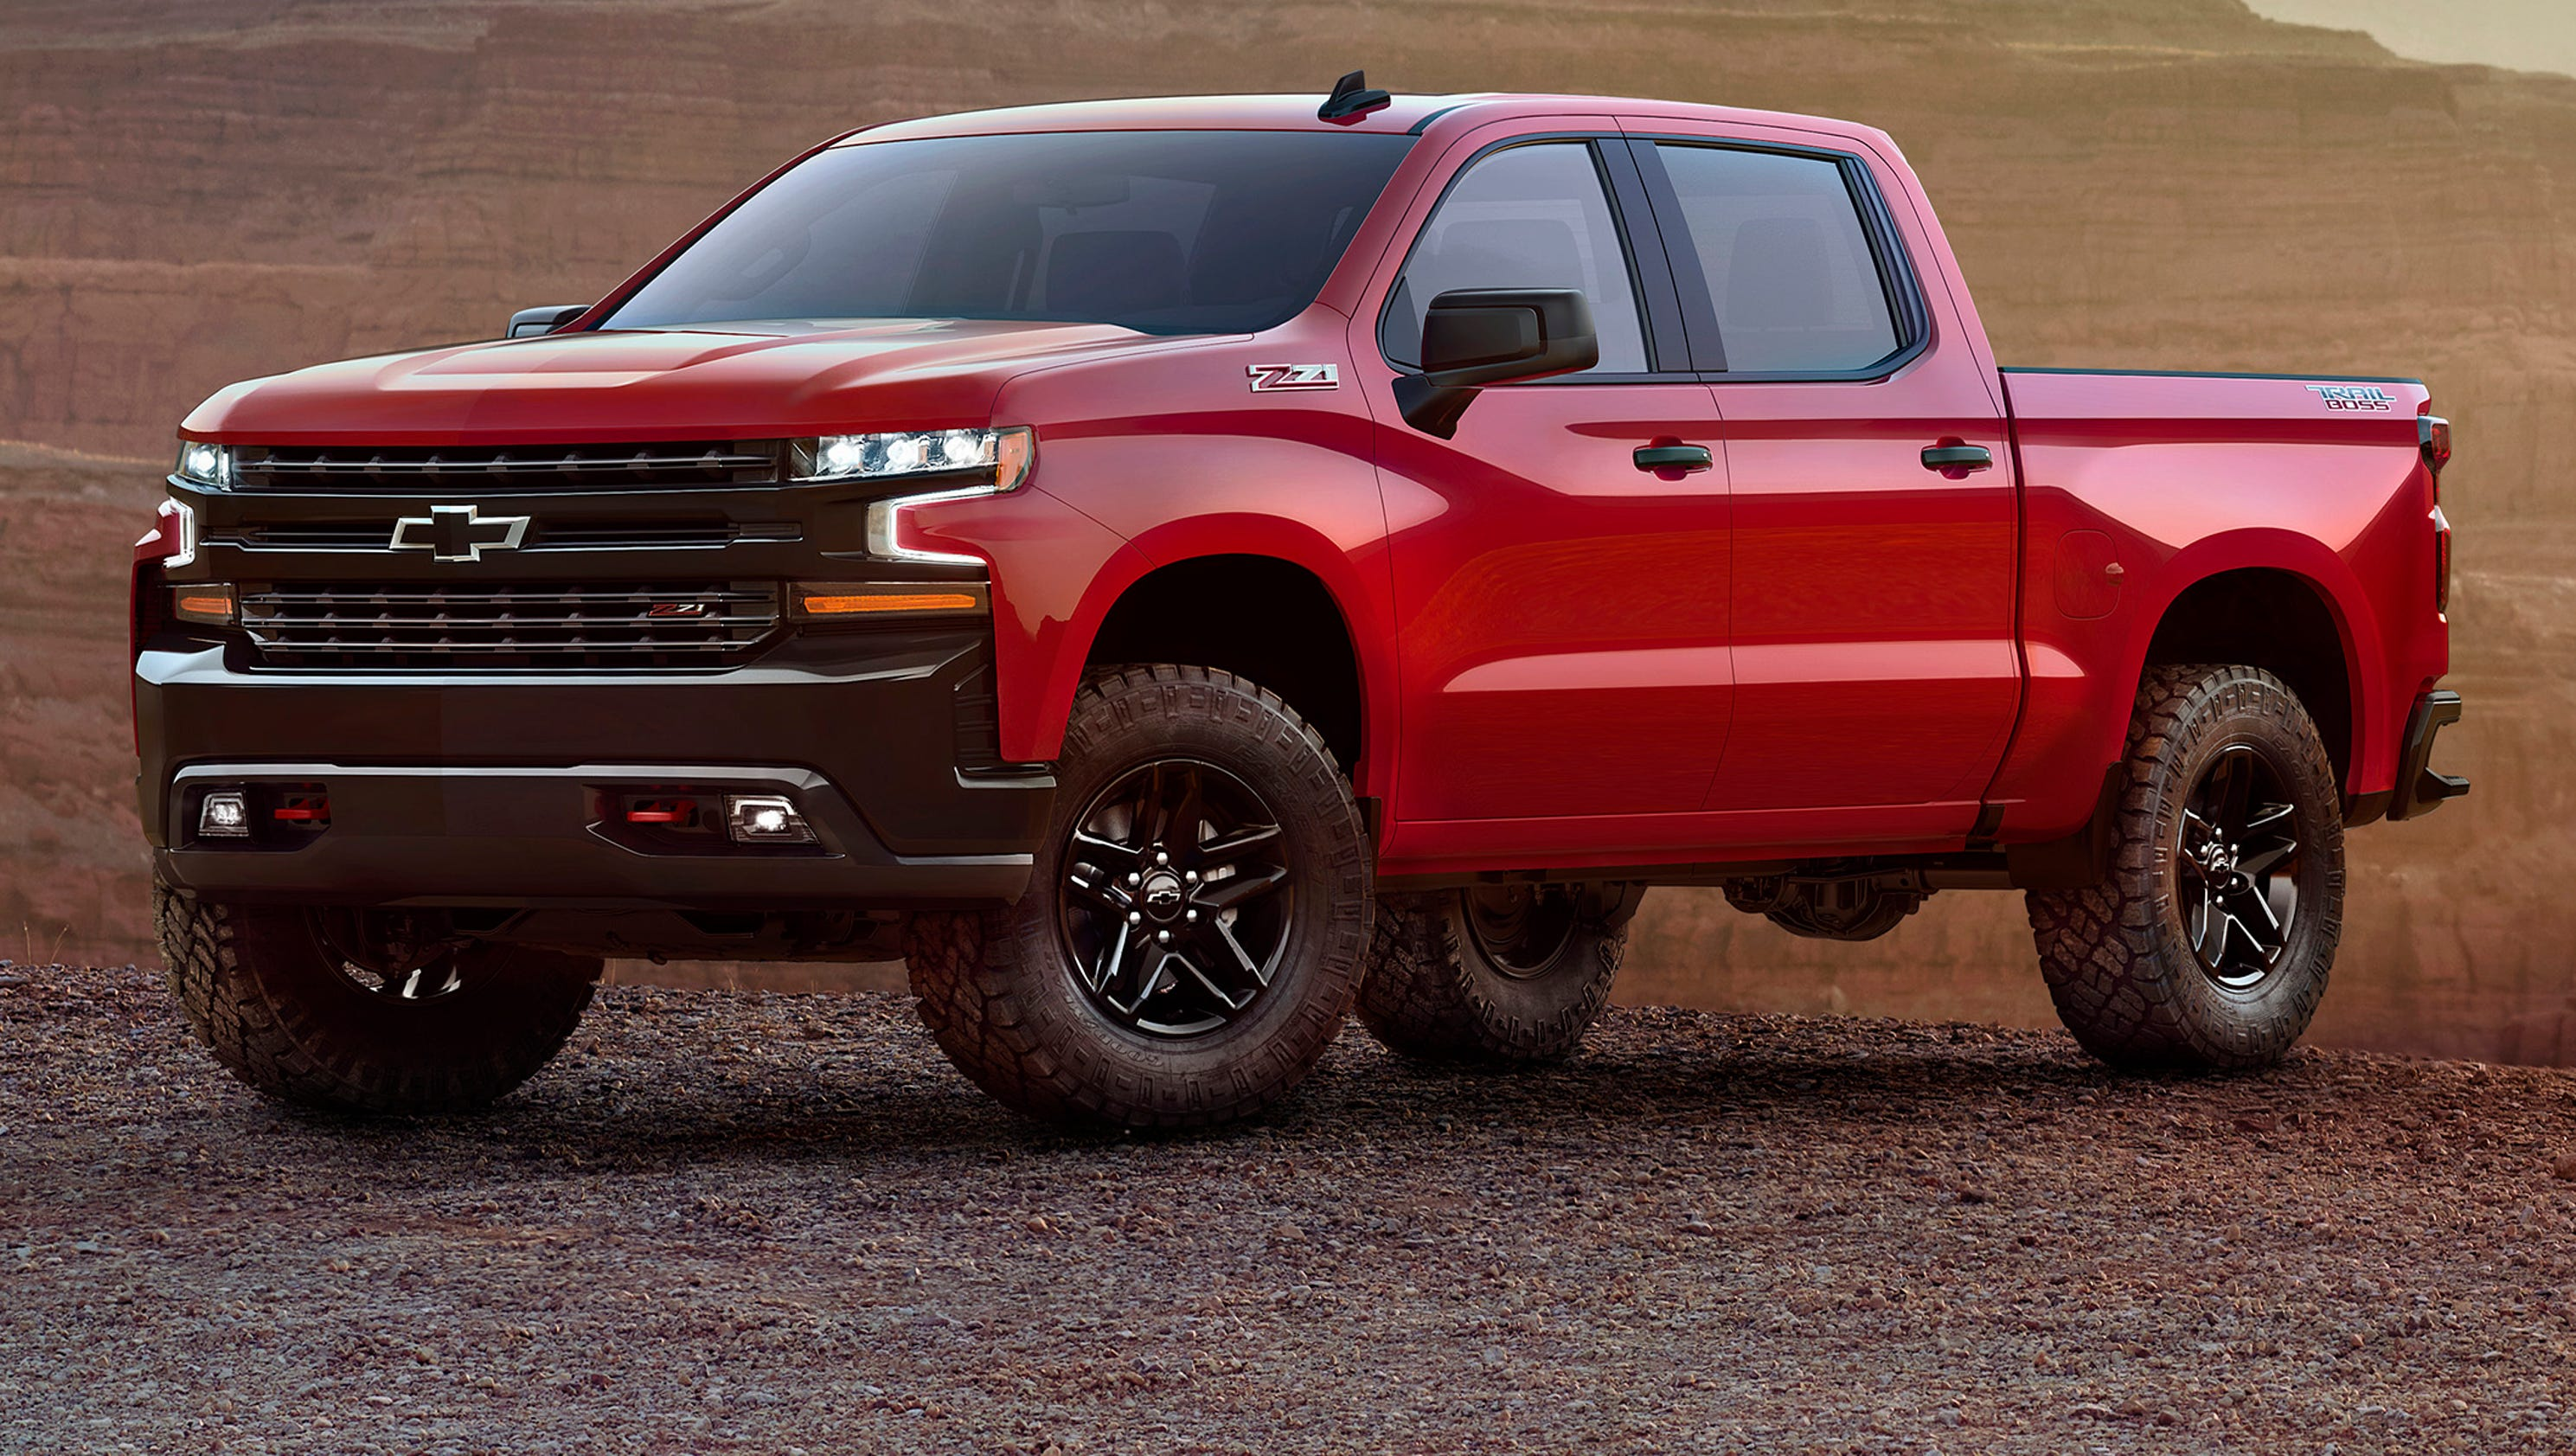 New Chevy Truck >> Chevrolet Silverado Gets New Look For 2019 And Lots Of Steel